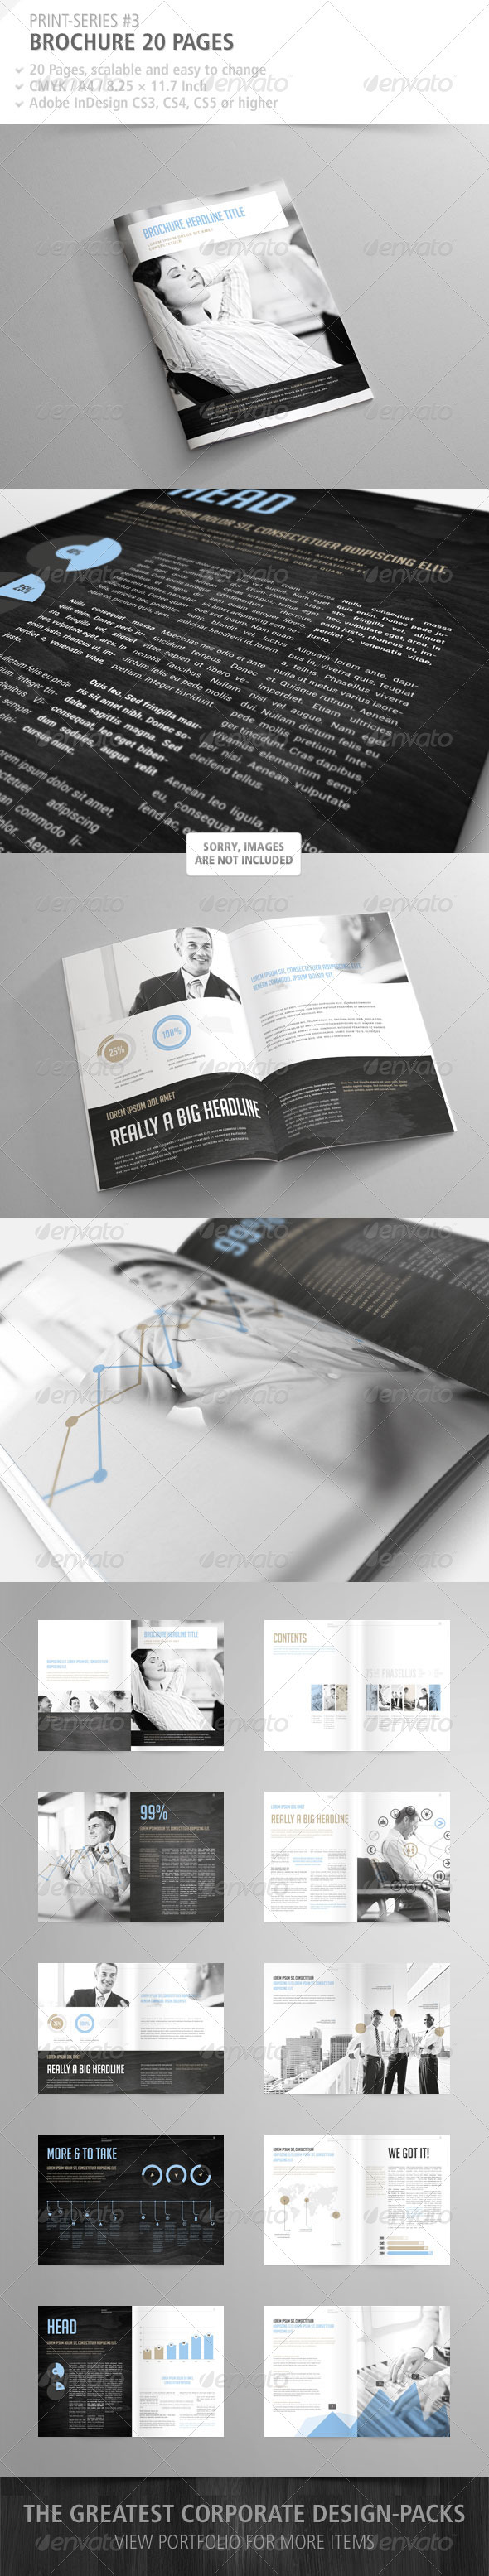 GraphicRiver Brochure 20 Pages Print-Series #3 2831180